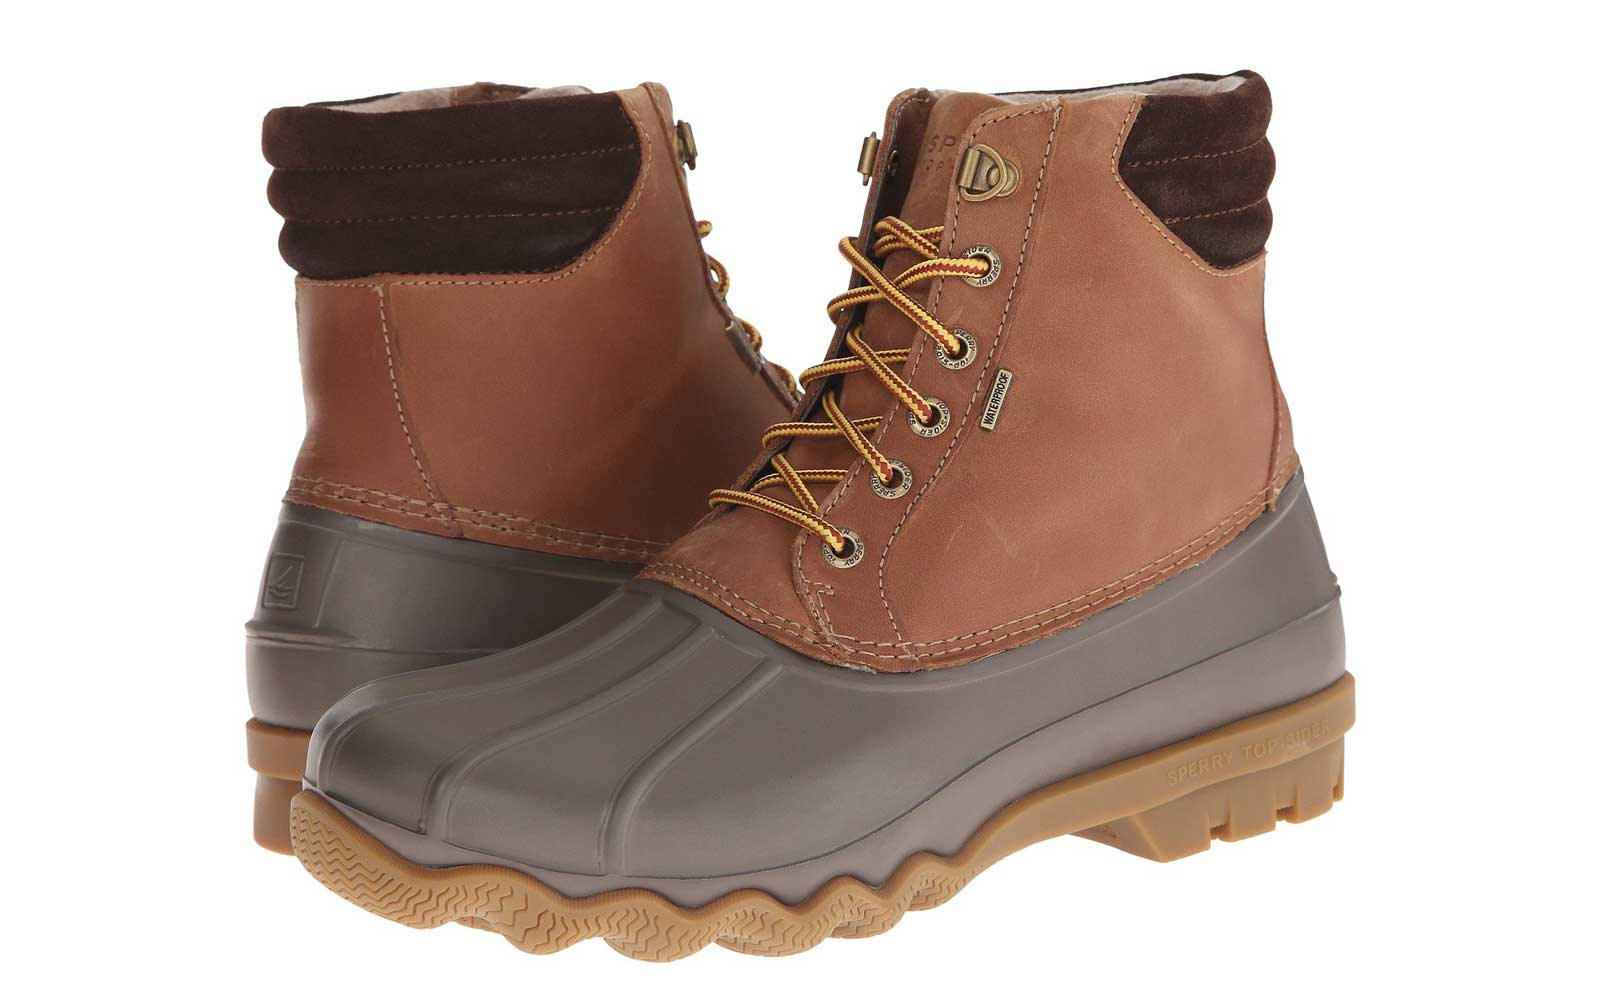 Men's Brown and Grey Lace-up Leather Waterproof Boot